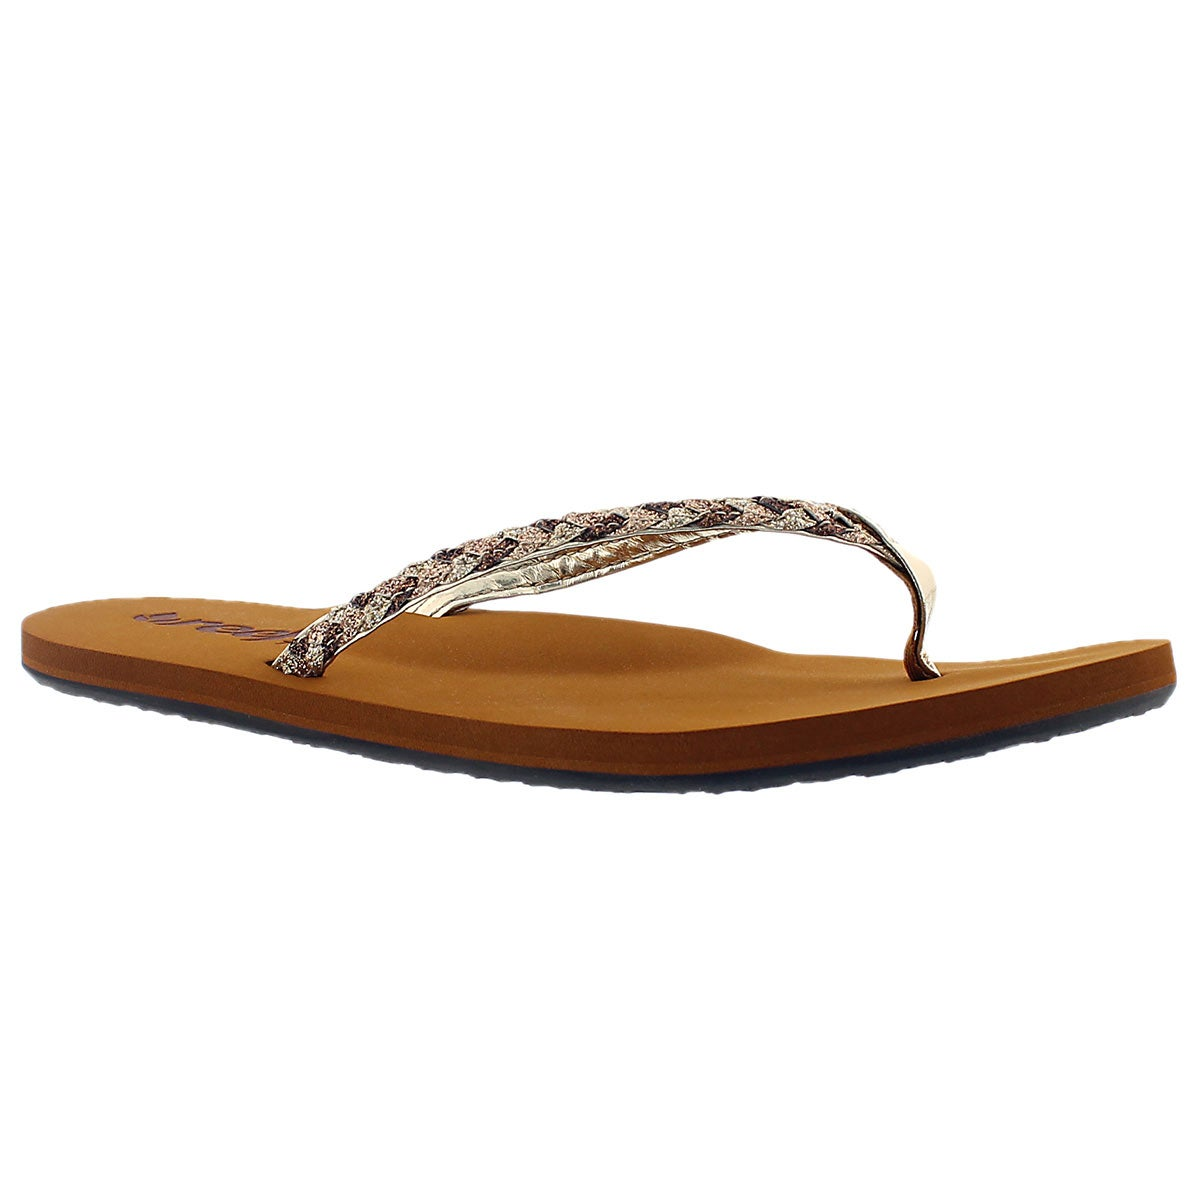 Lds Reef Twisted Stars tan/chmp flipflop